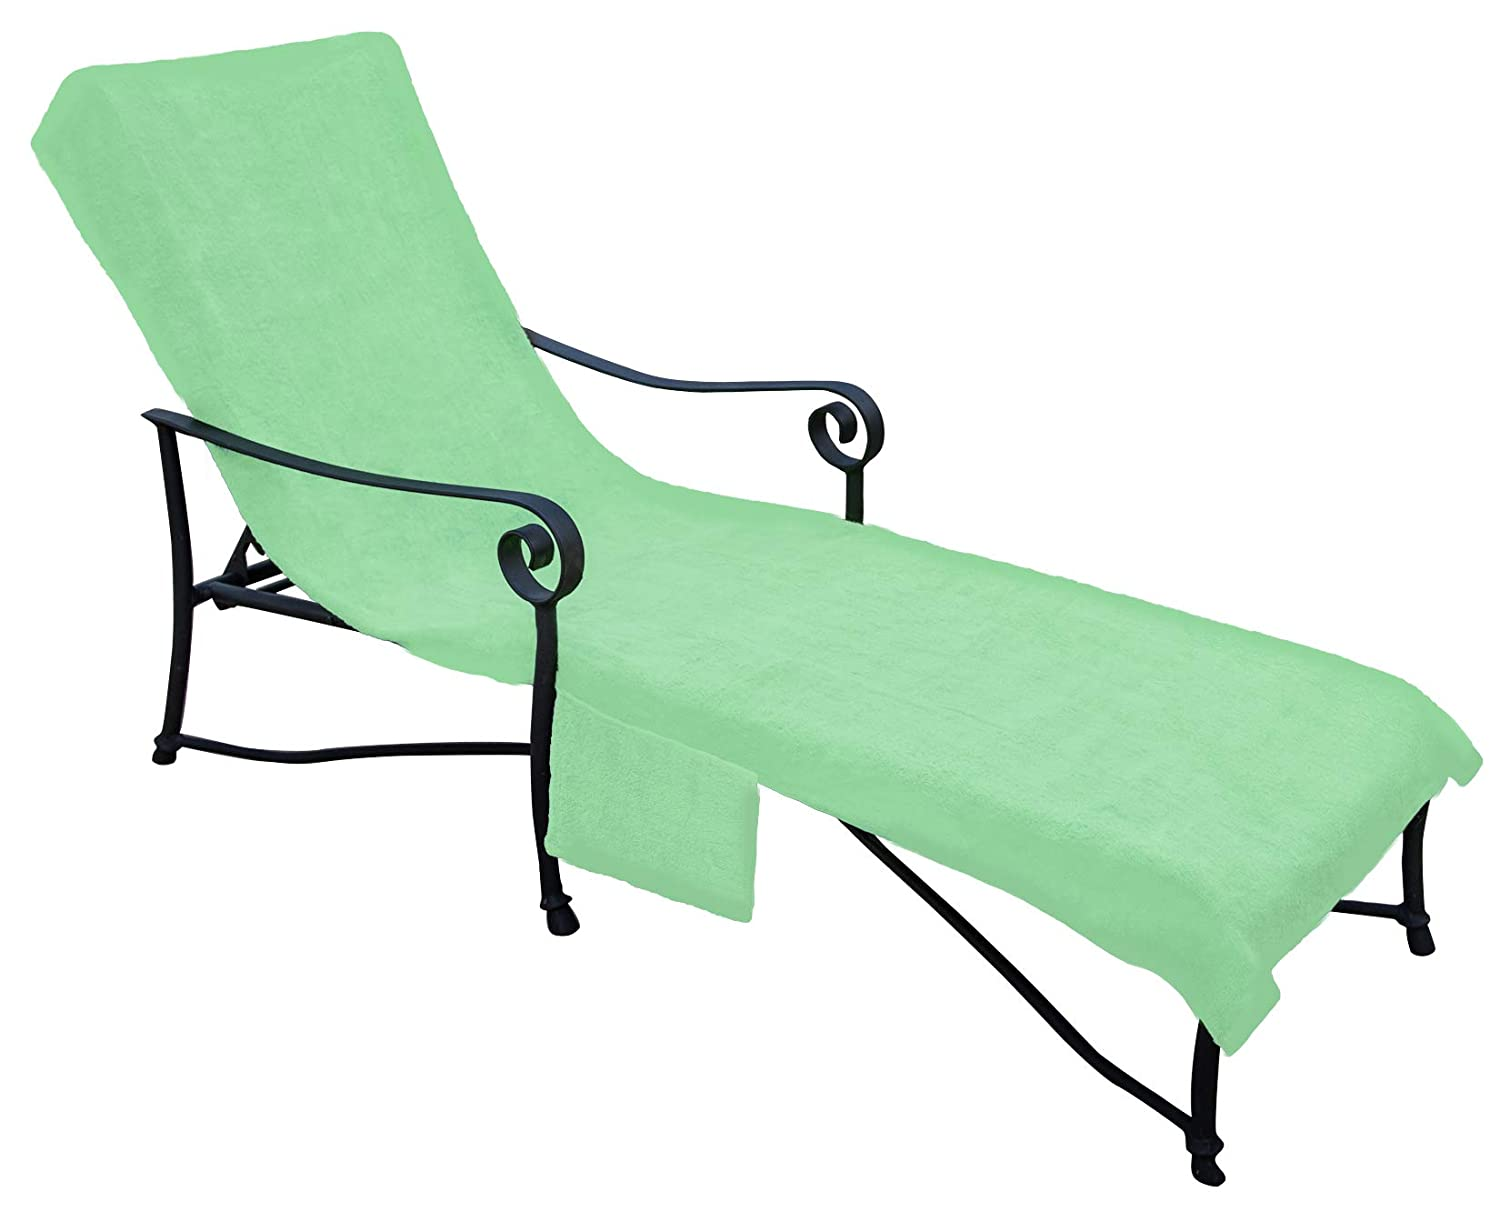 Pool side 1000 gram chaise cover pool lounge chair cover lawn chair cover patio chair cover with 10 inch slip on back and side pocket pool paradise green